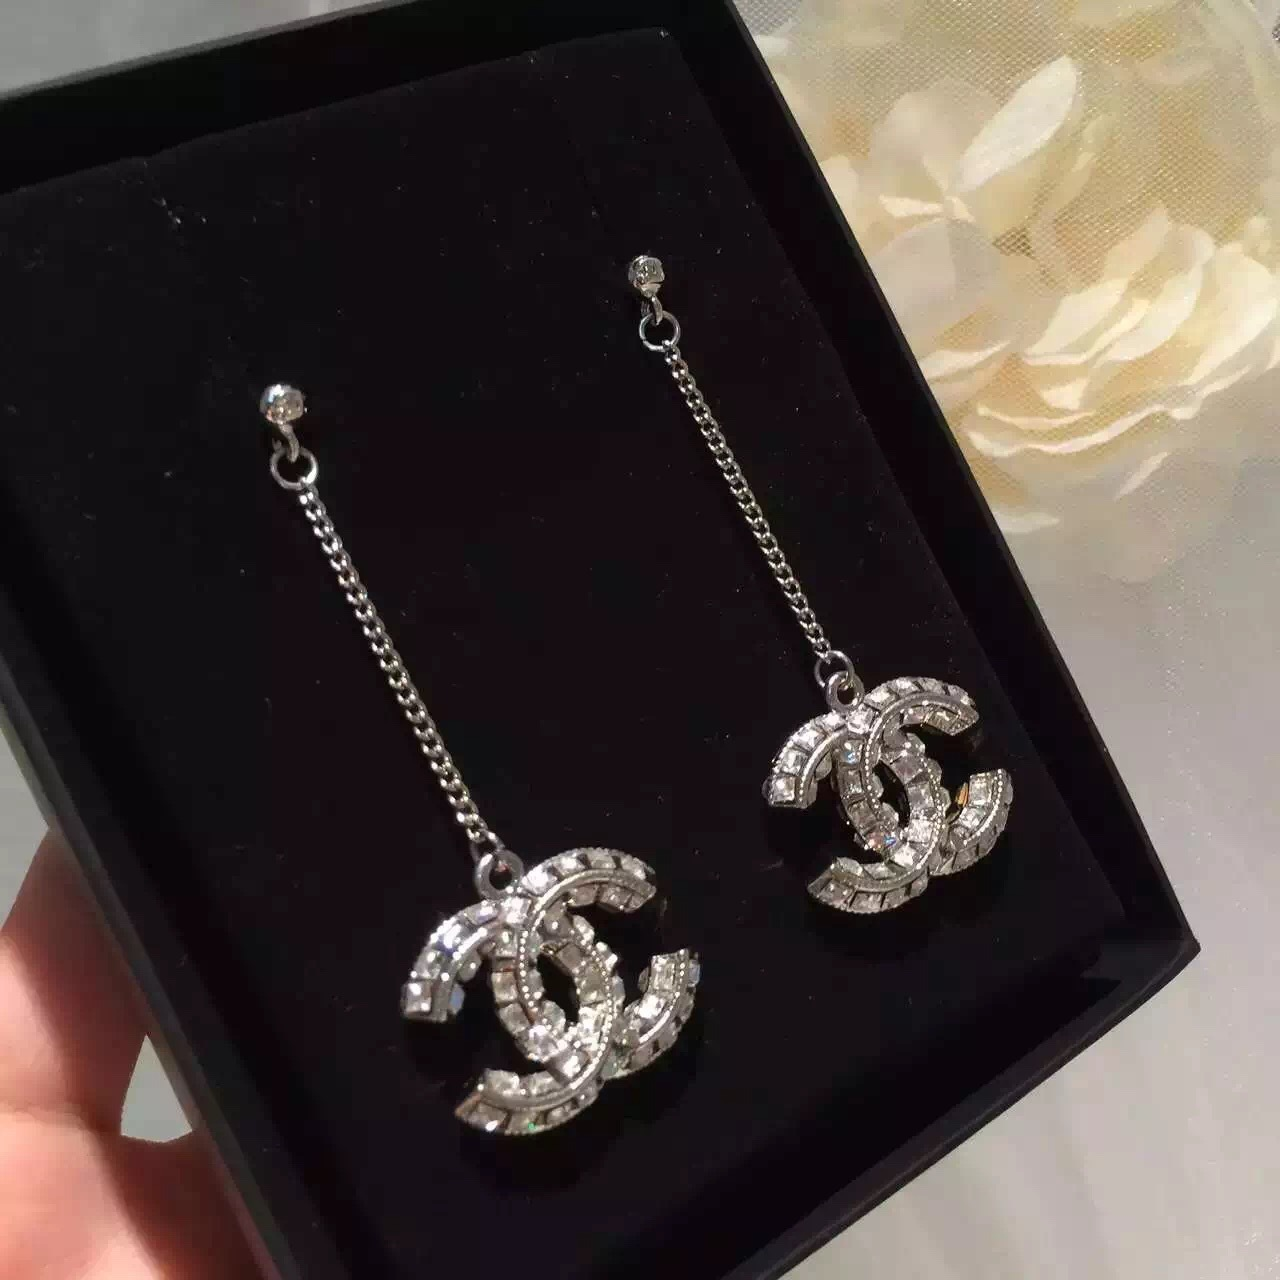 100% Auth Chanel 2016 Large Cc Dangle Drop Crystal Earrings Strass Limited  Ed